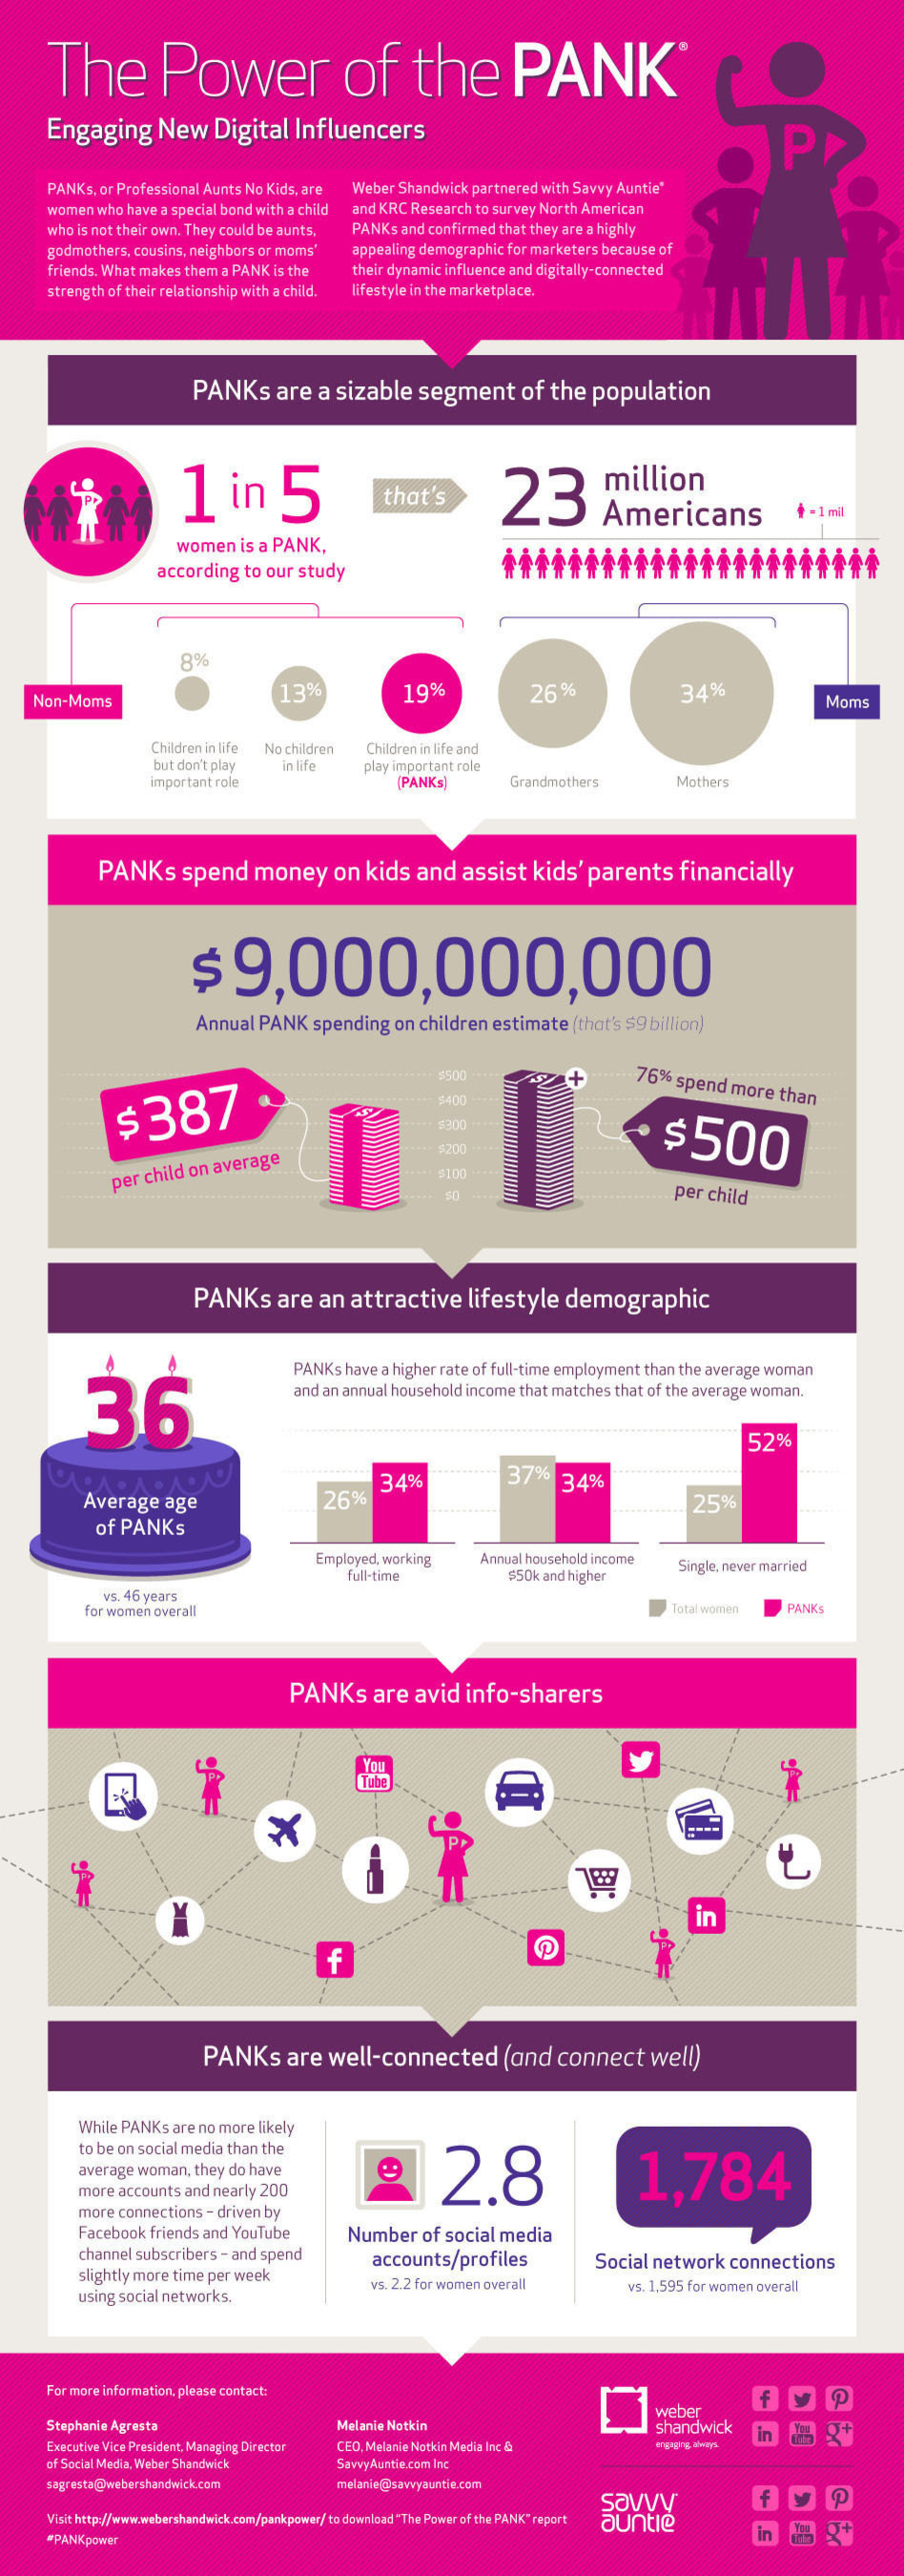 Weber Shandwick Launches Digital Women Influencers Study: 'The Power of the PANK,' First in Series